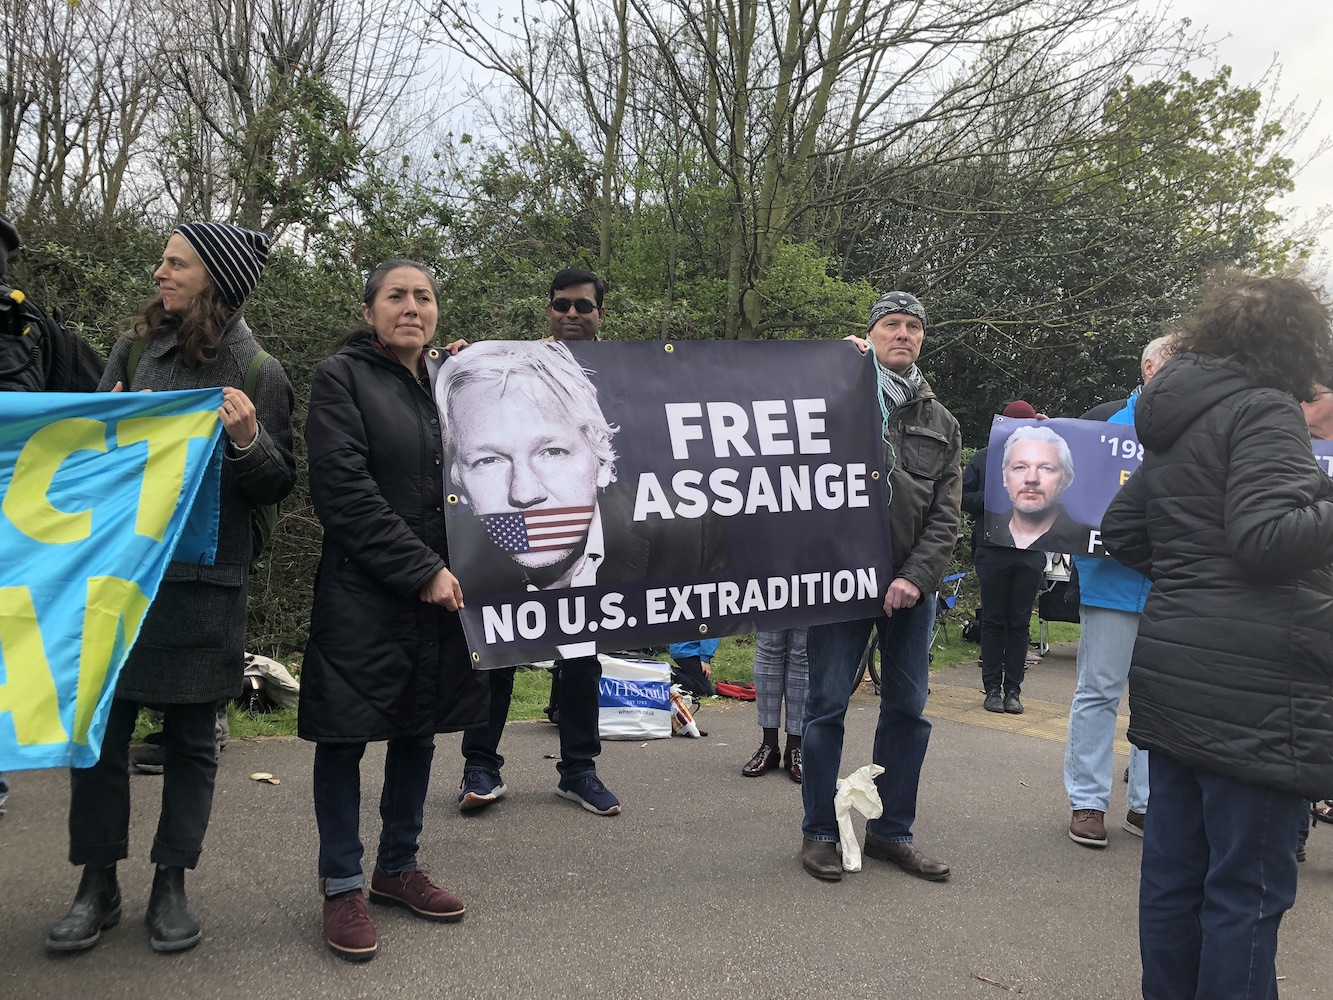 assange-protests.jpg